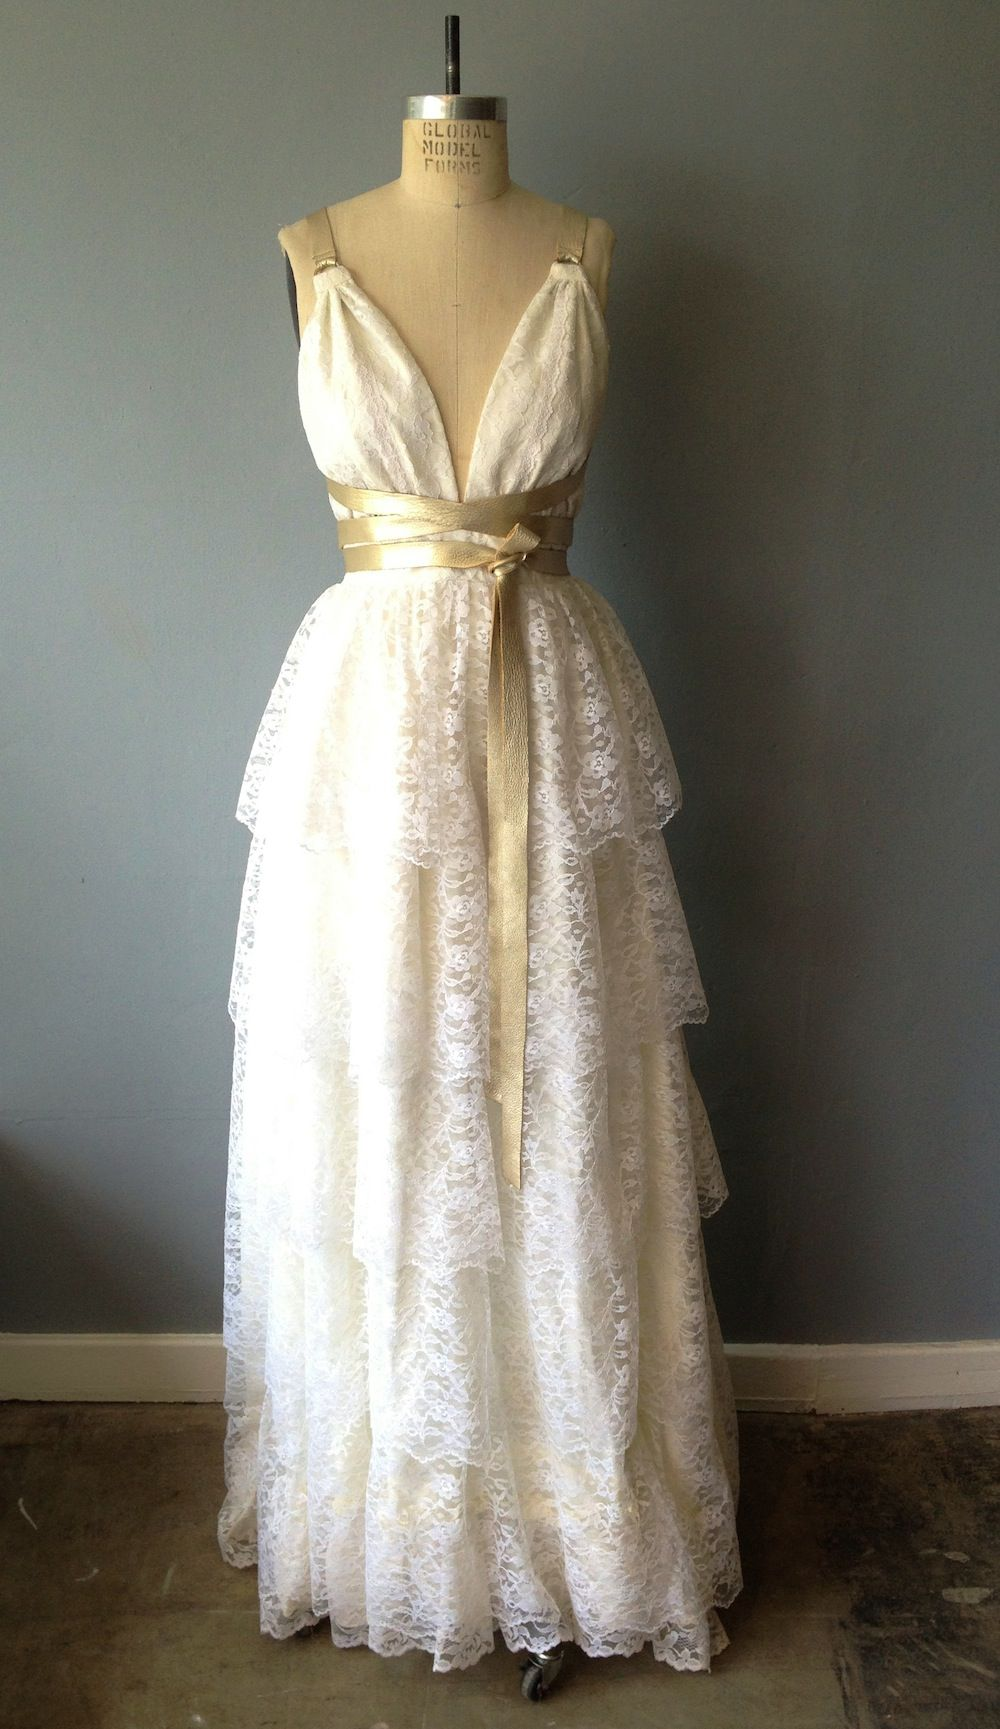 Vintage Wedding Dresses Five Dock : What to know before you for a vintage wedding dress racked ny